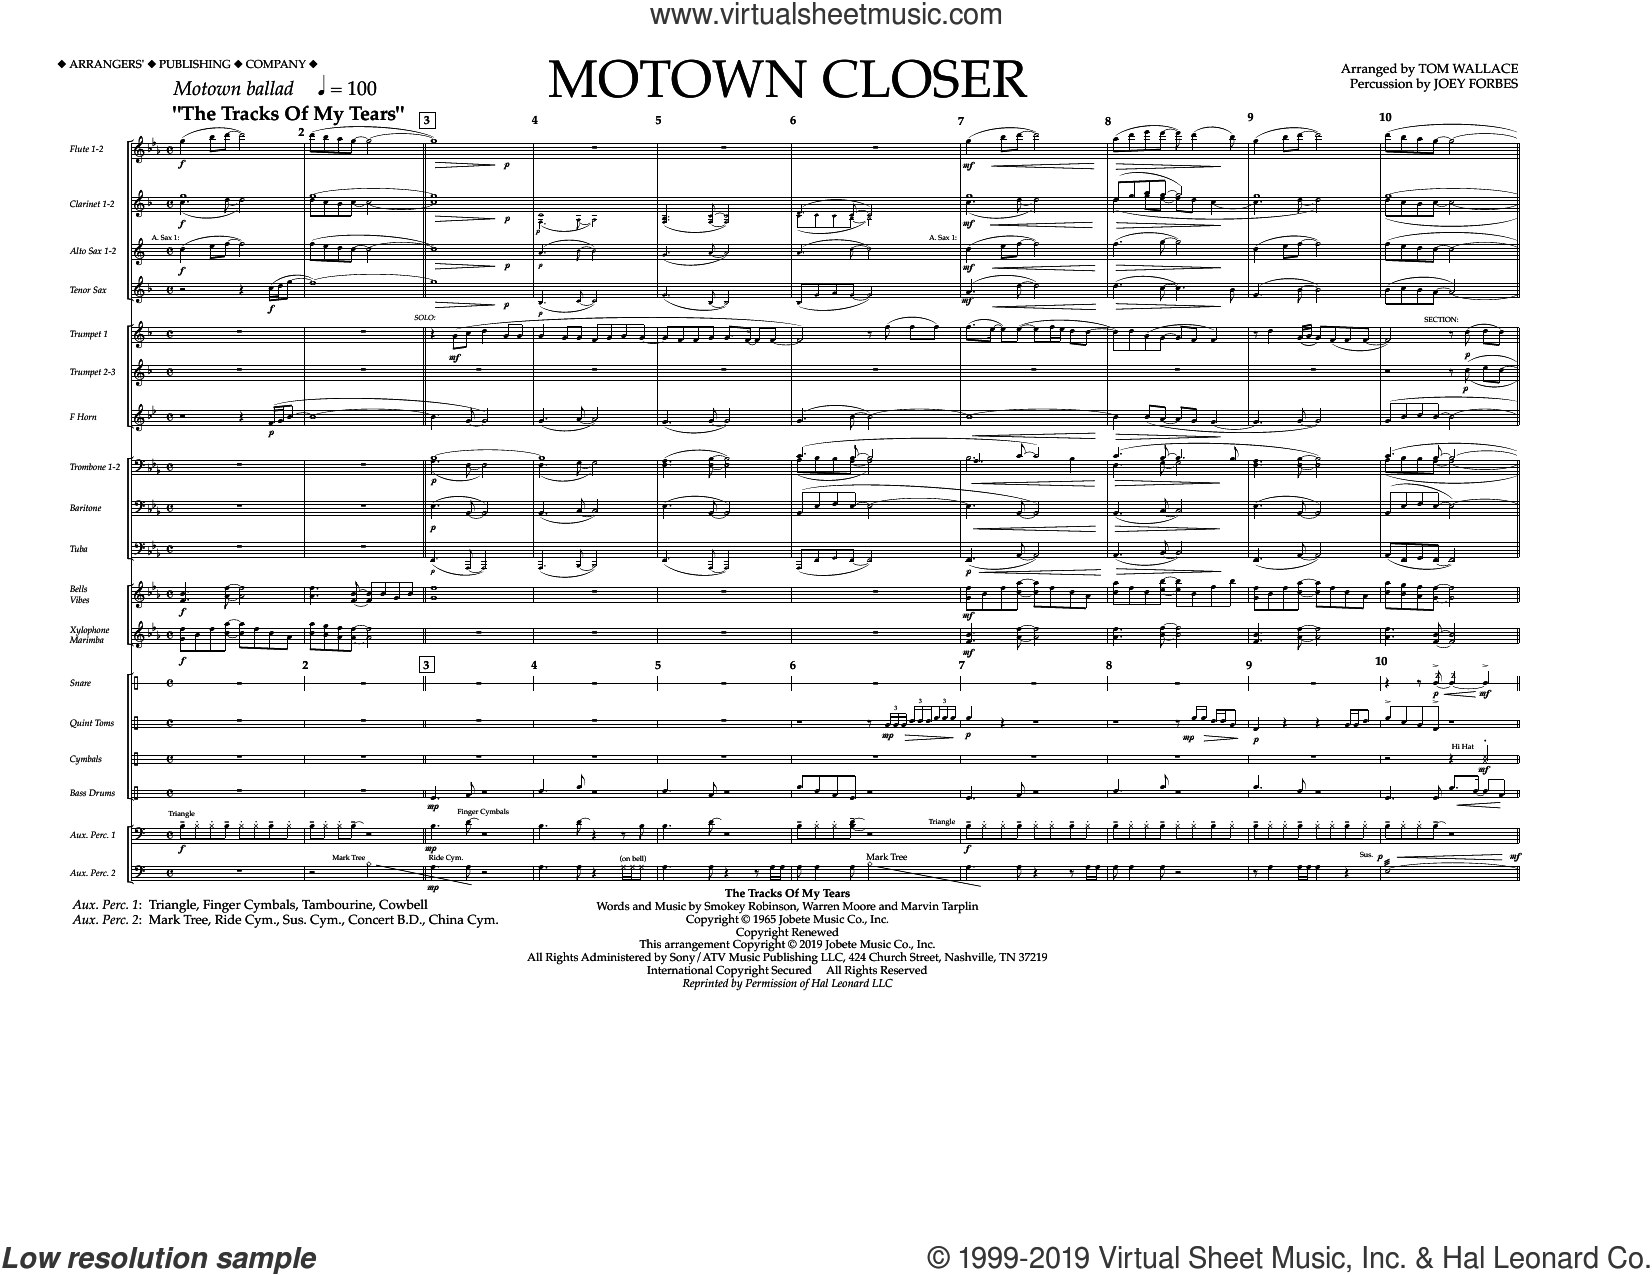 Motown Closer (arr. Tom Wallace) (COMPLETE) sheet music for marching band by Linda Ronstadt, Marvin Tarplin, The Miracles, Tom Wallace and Warren Moore, intermediate skill level